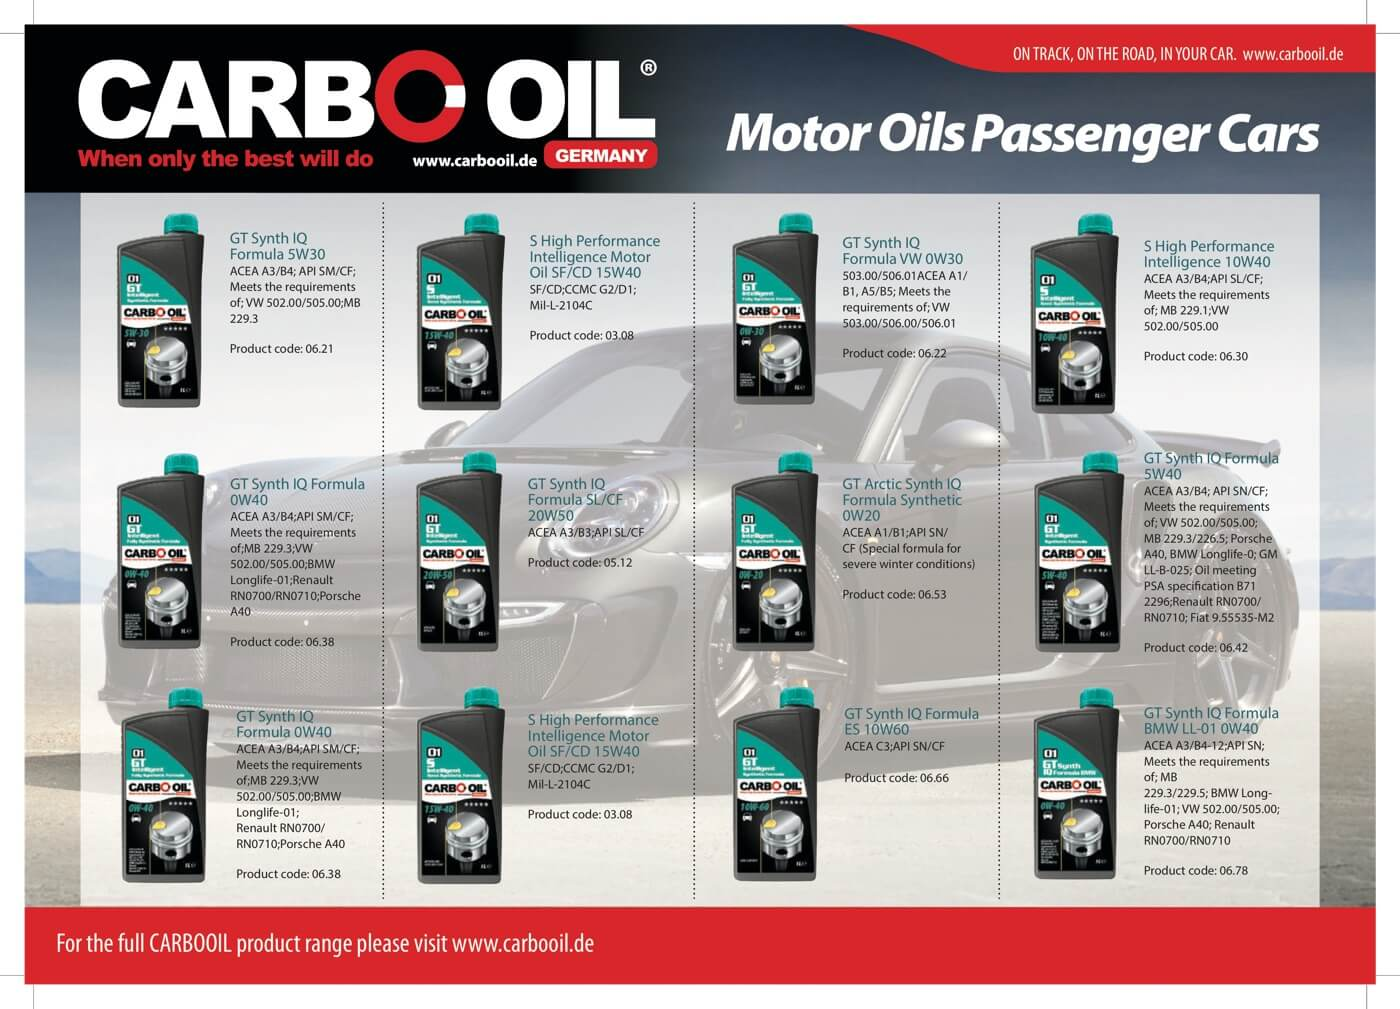 The Carbo-Oil advantage A4 page 2